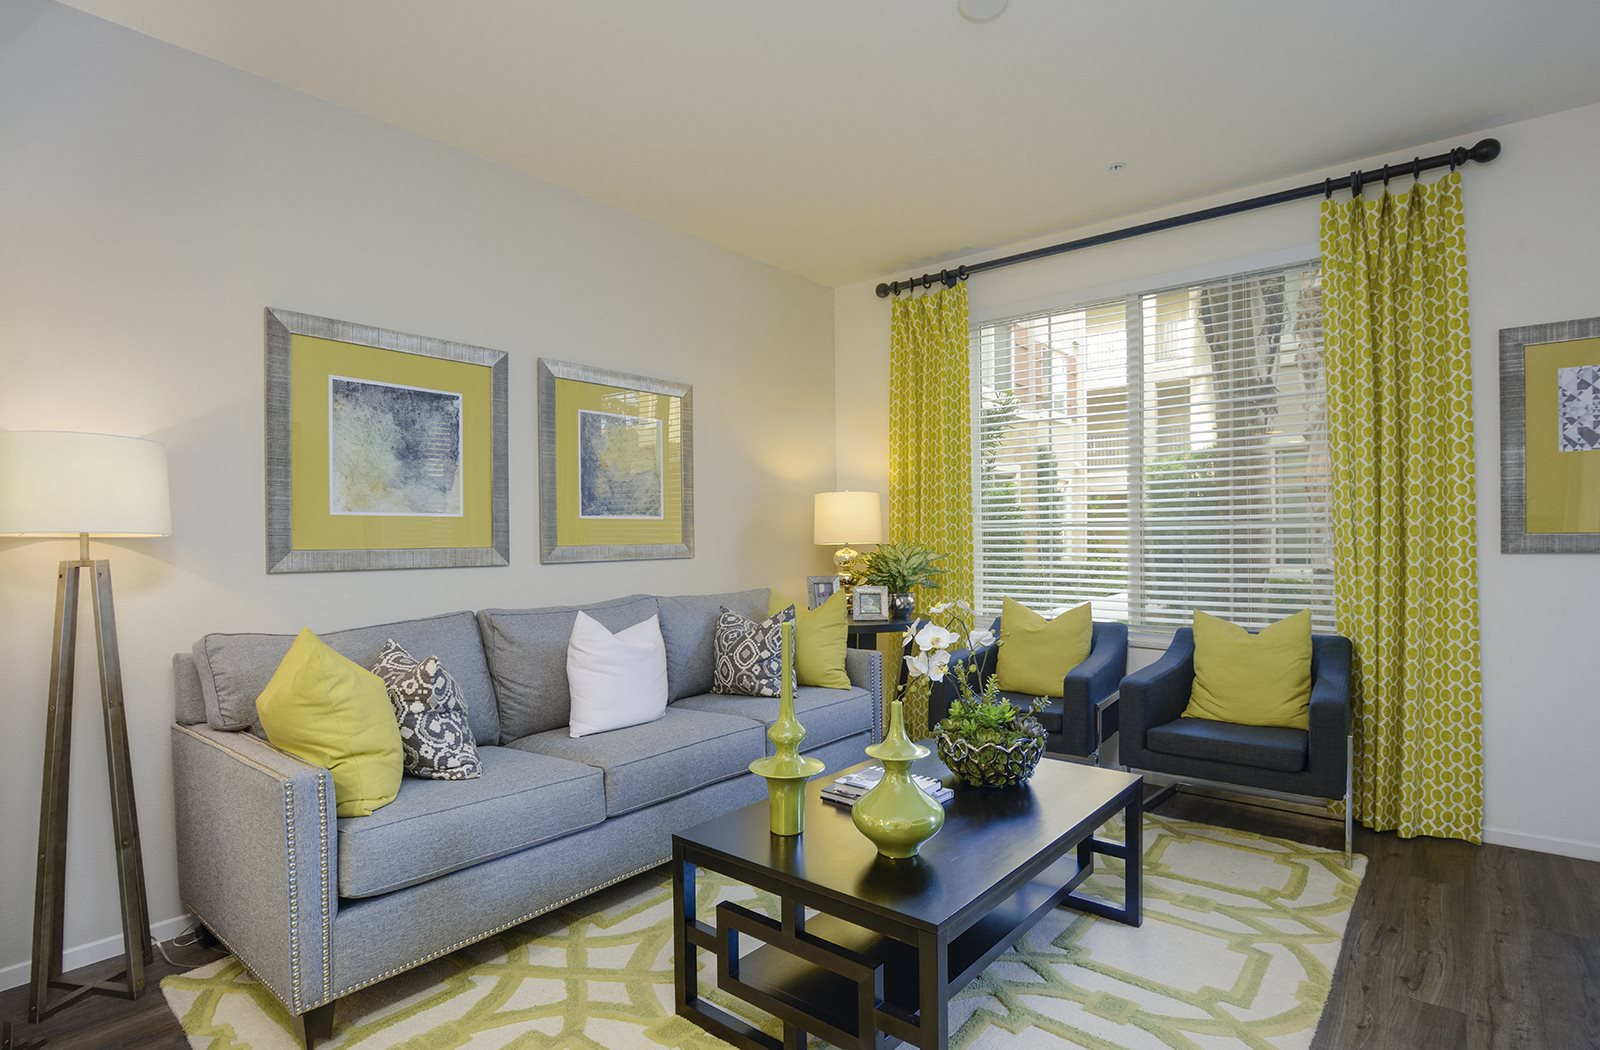 Upgraded Interiors at Preserve at Melrose, Vista, 92083